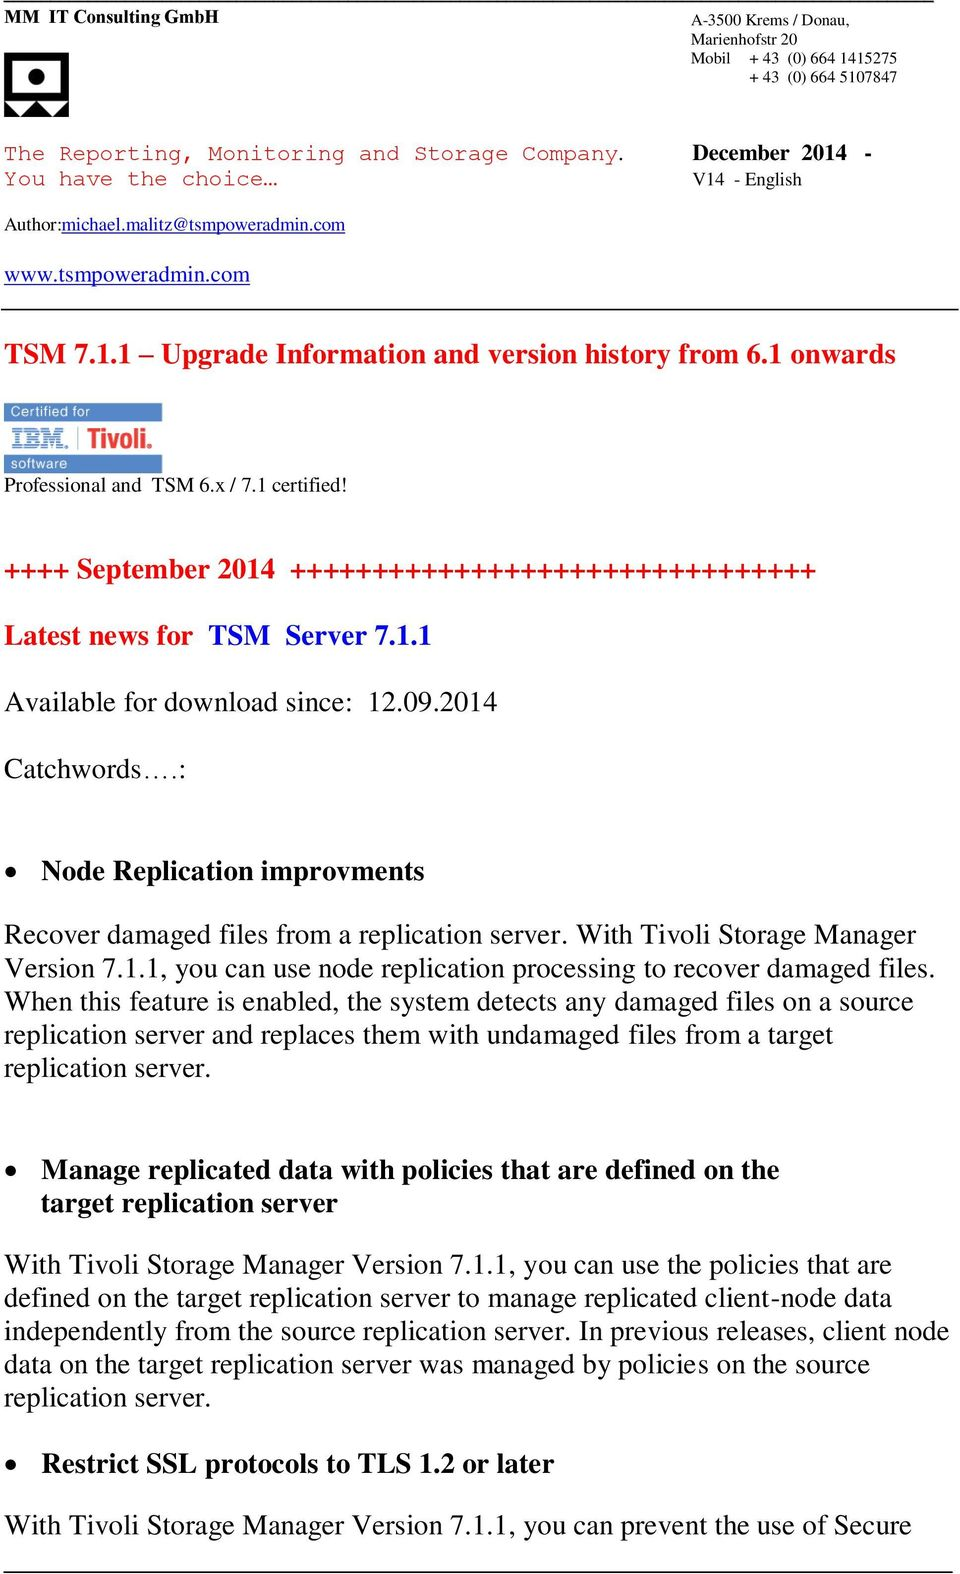 TSM Upgrade Information and version history from 6 1 onwards